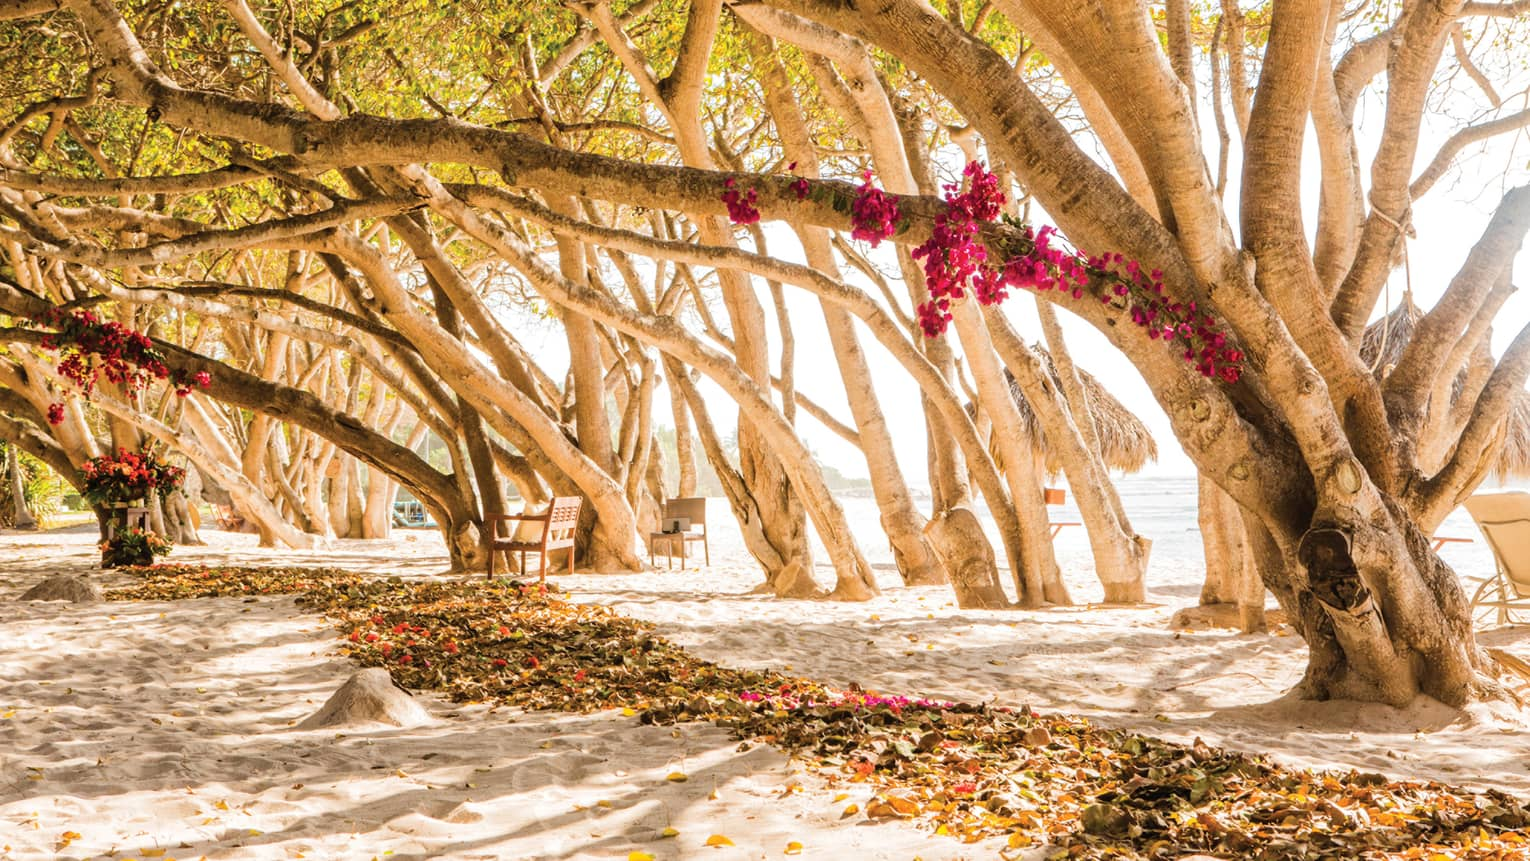 Row of trees, branches with pink flowers stretch over beach trail